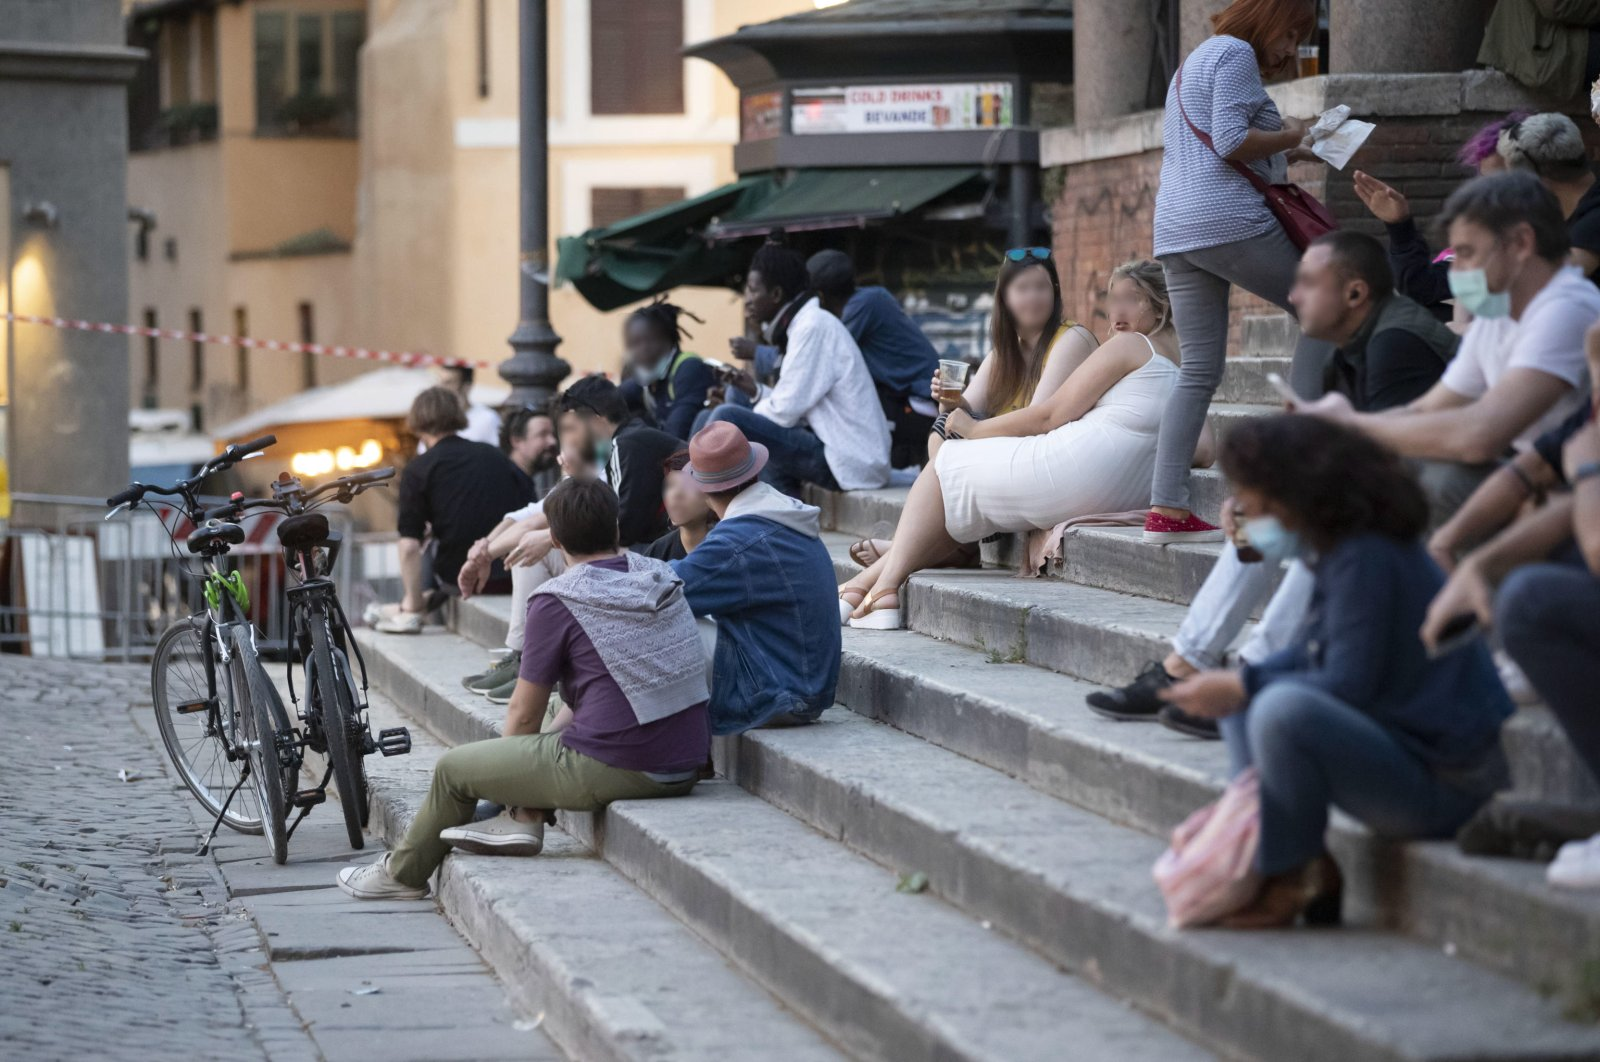 Groups of young people gather at night in bars or cafes to spend the night at Trastevere district in Rome, Italy, 21 May 2020.